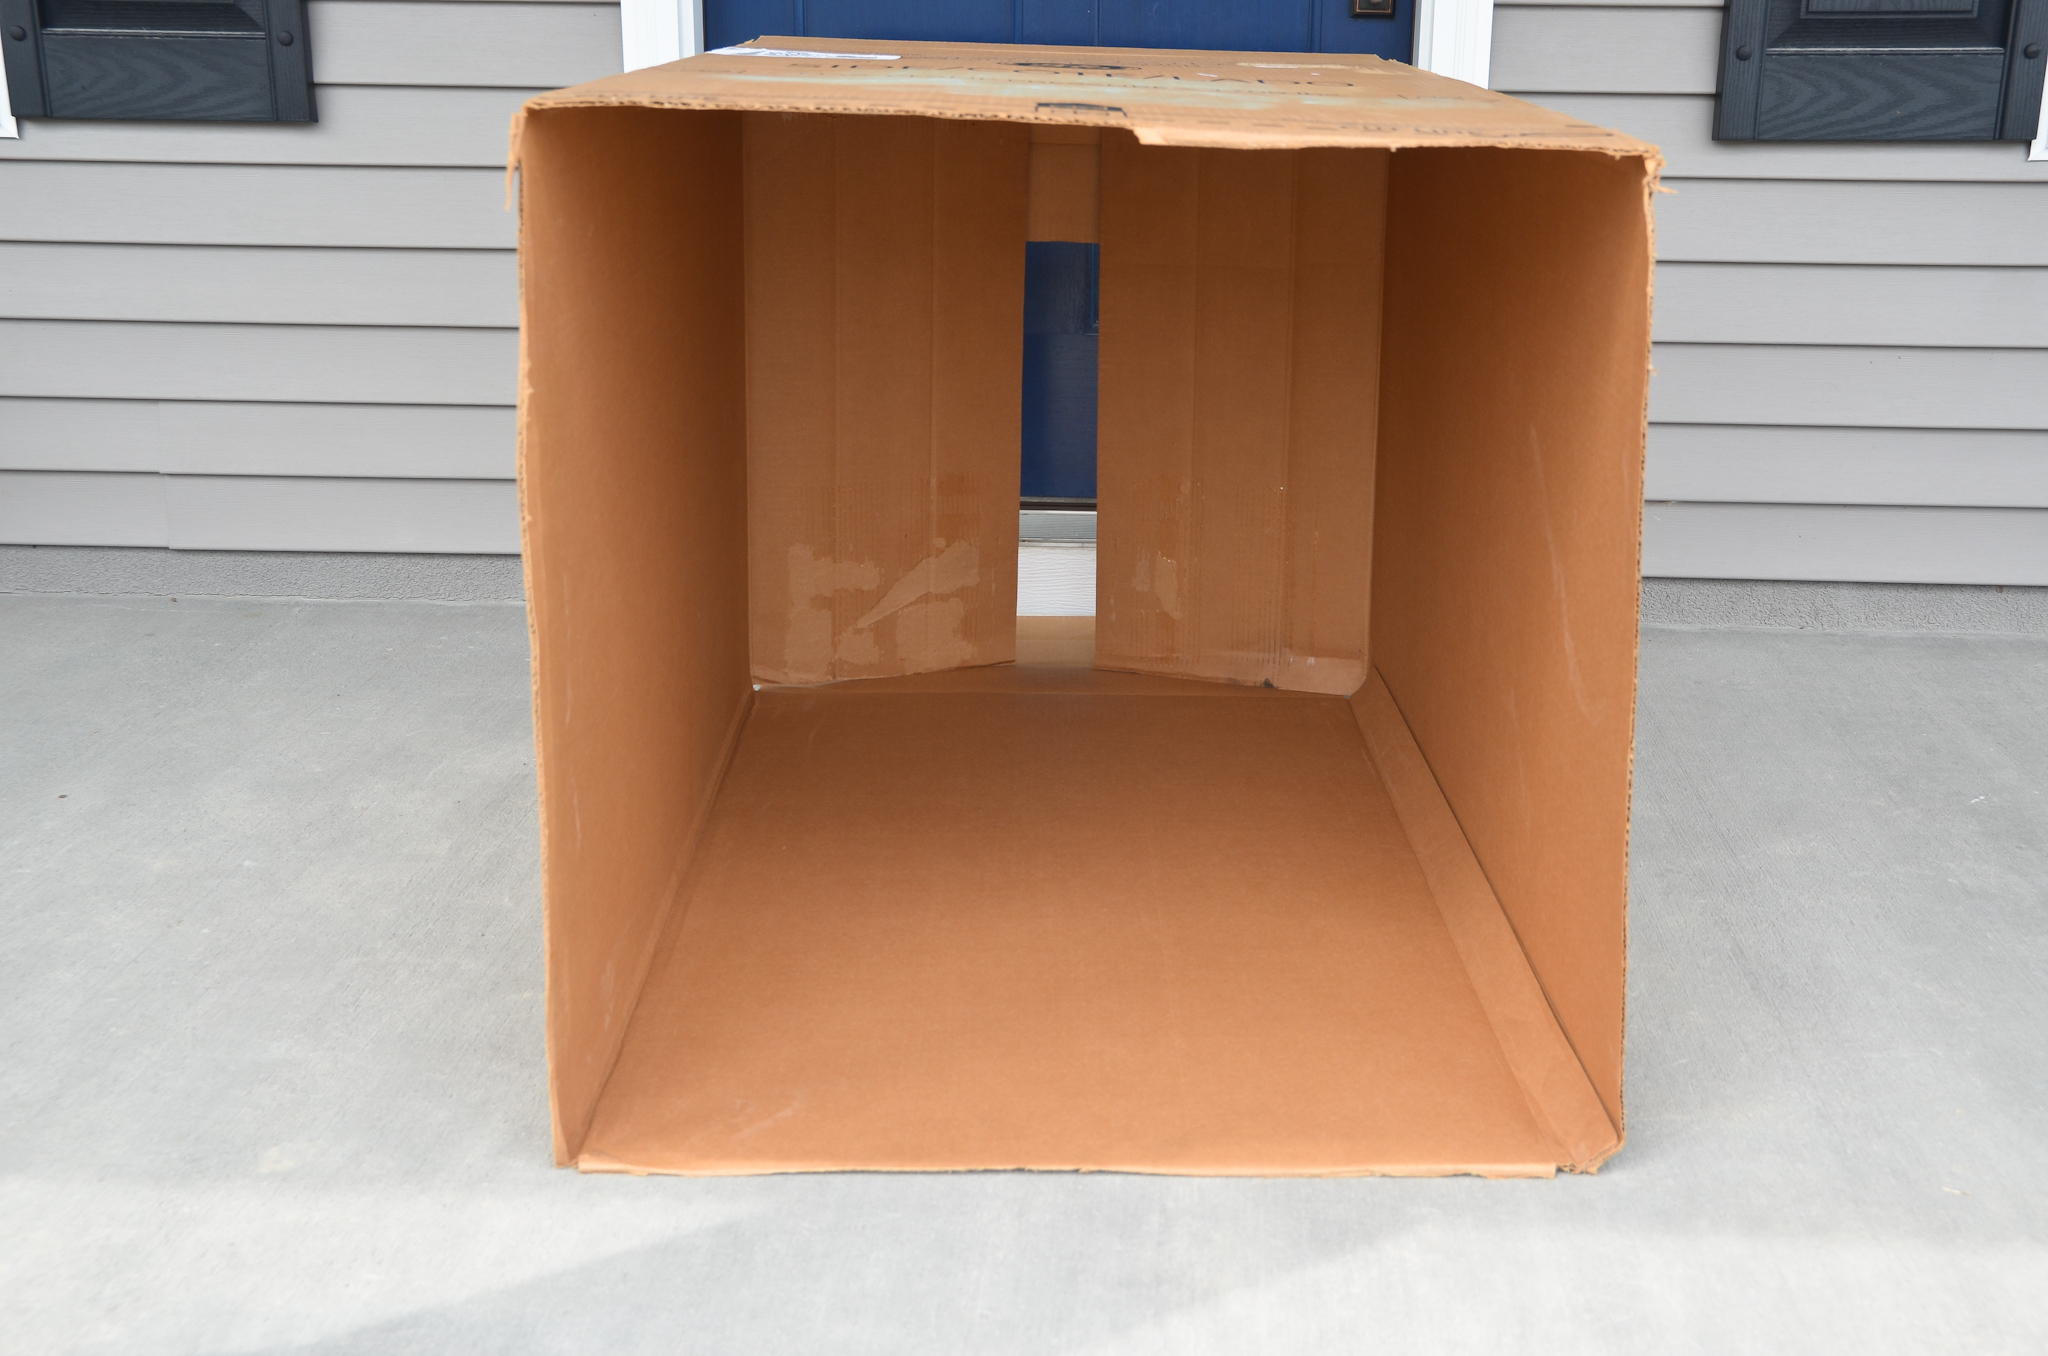 Cardboard Box for Kids Playhouse